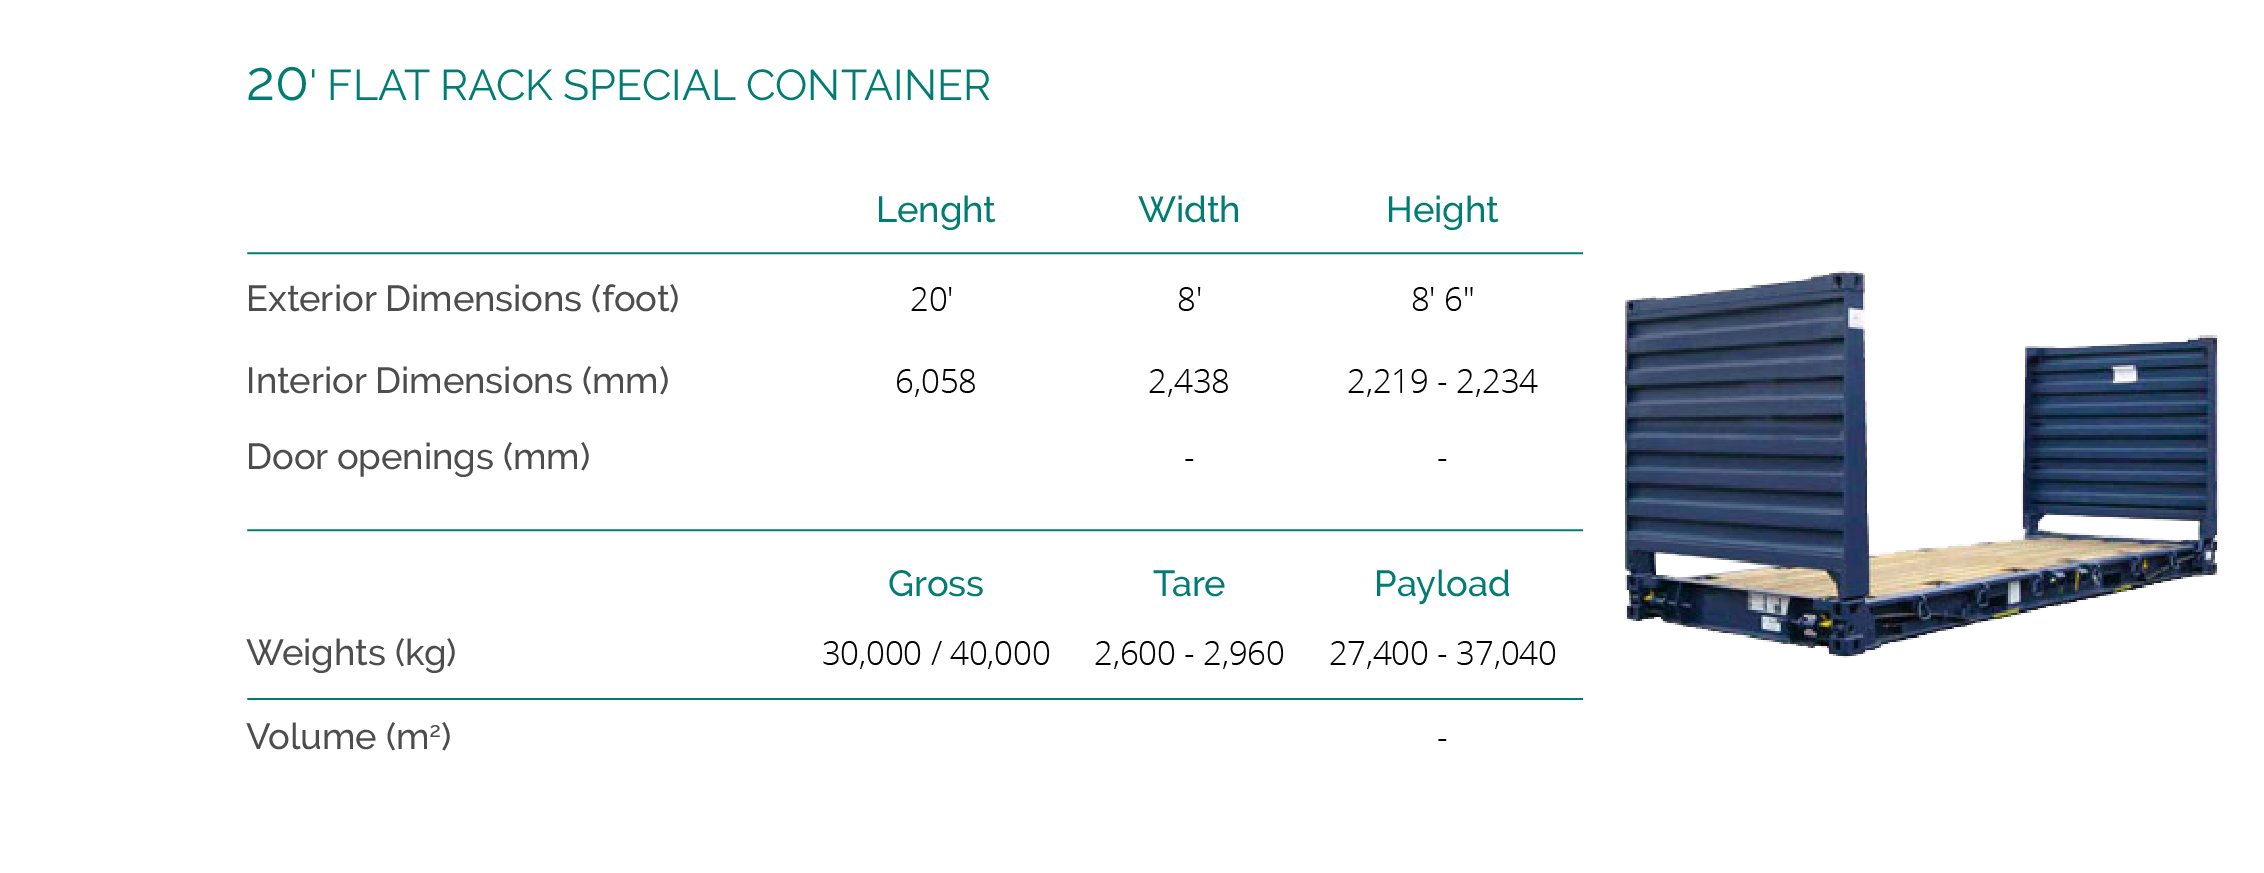 20' FLAT RACK SPECIAL CONTAINER